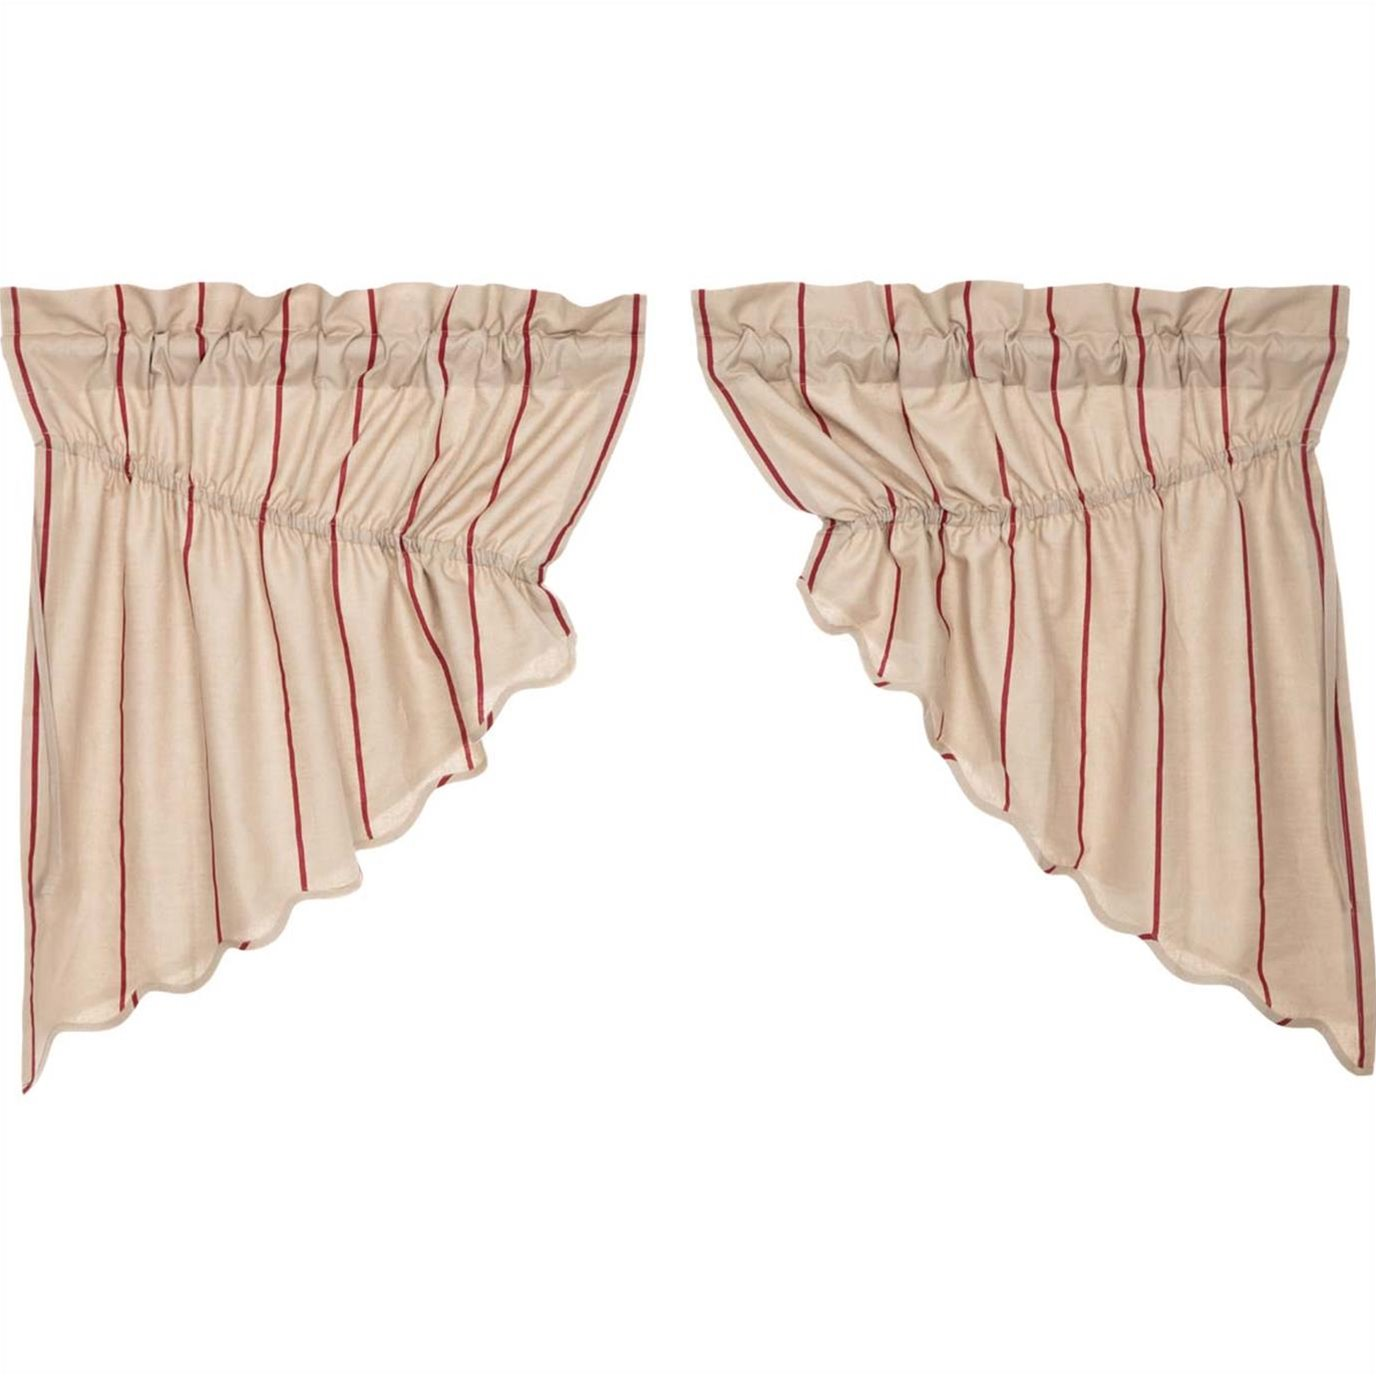 Charlotte Rouge Scalloped Prairie Swag Set of 2 36 x 36 x 18